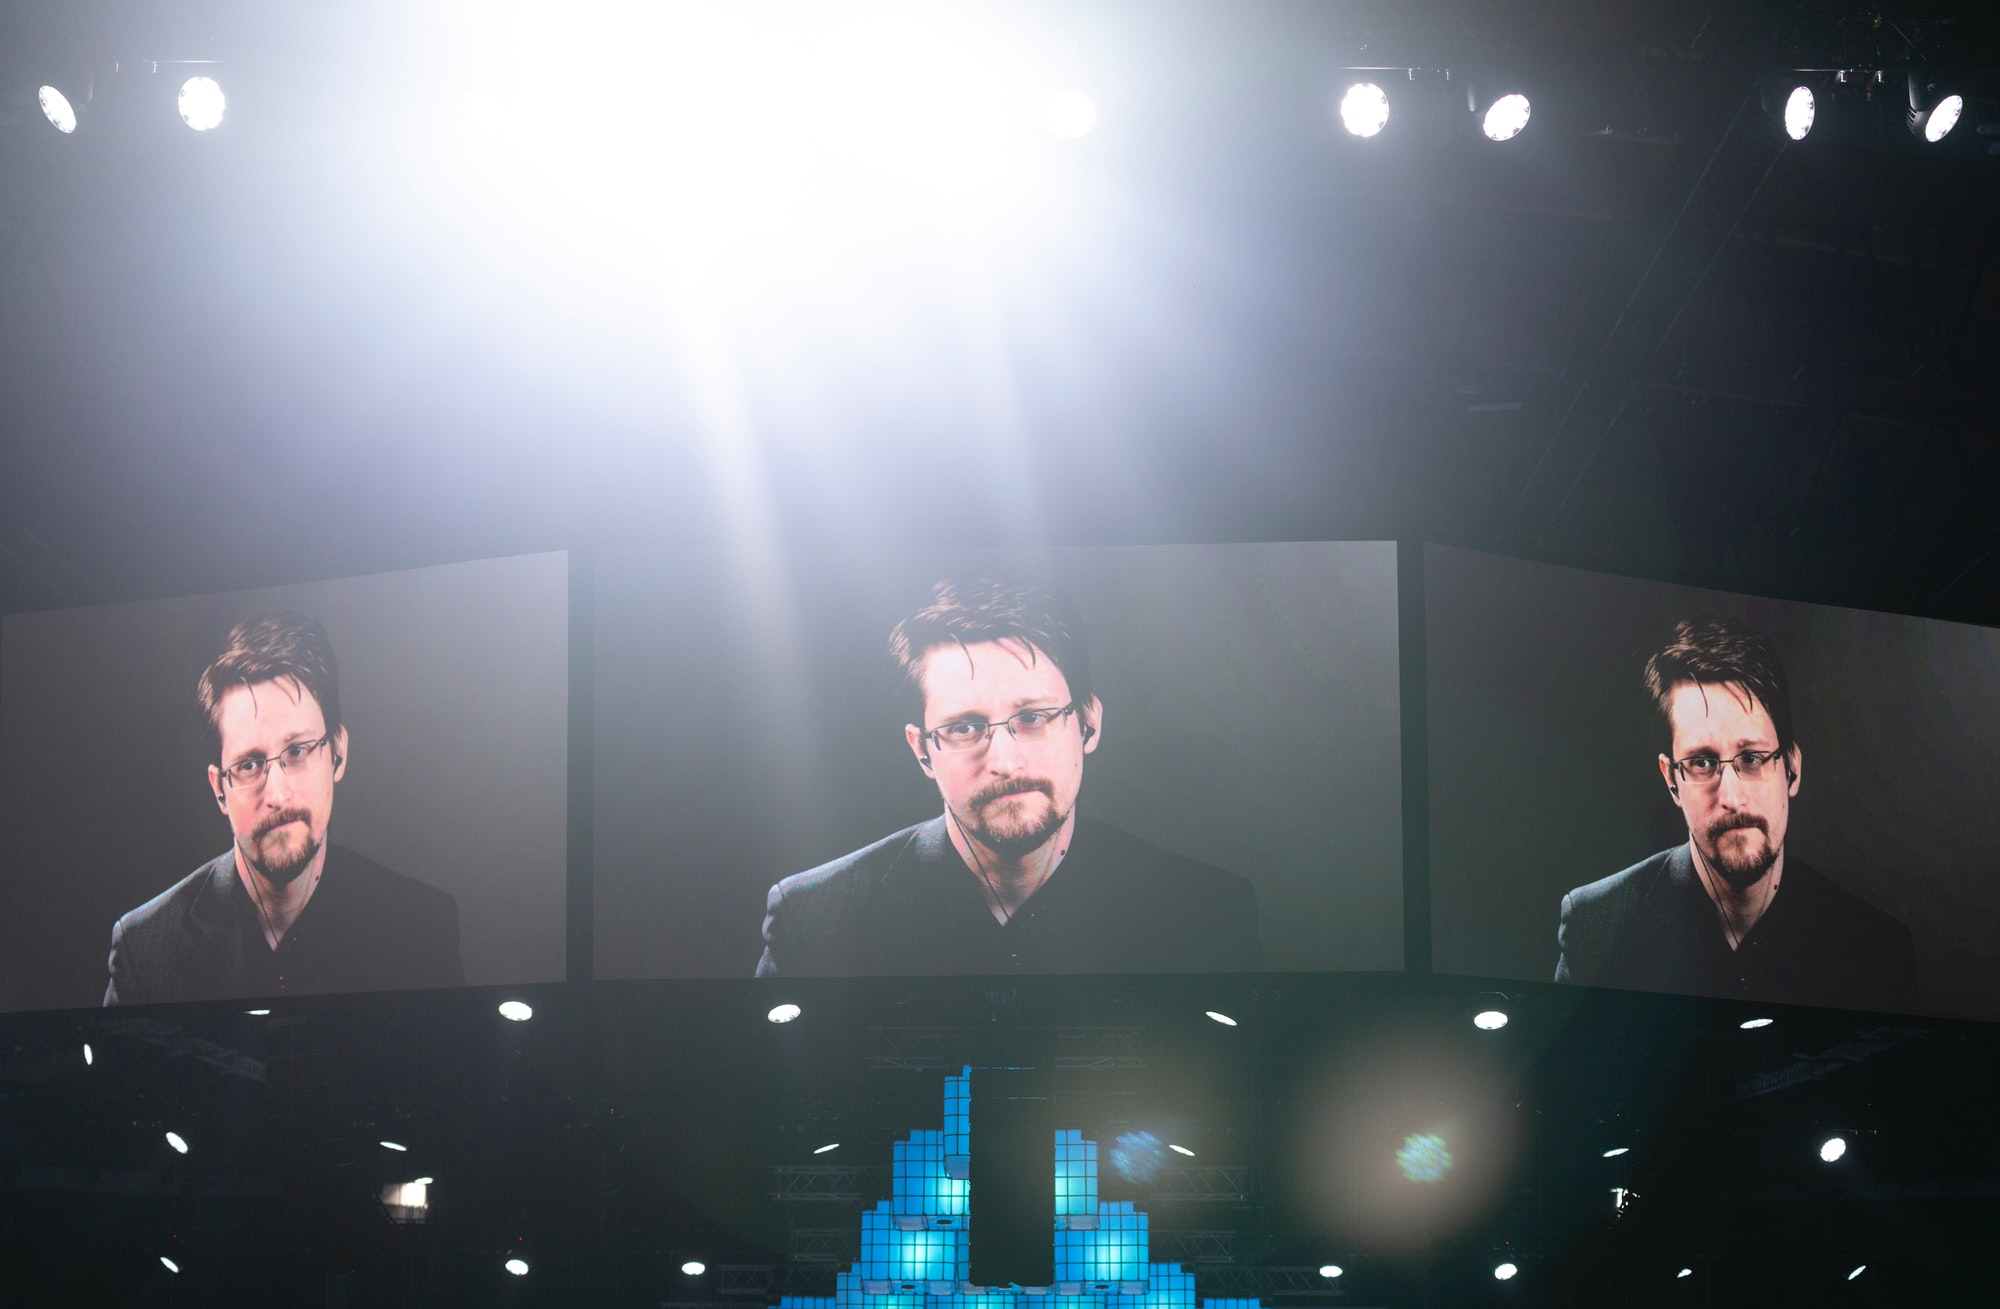 Whistleblower Edward Snowden talking about the National Security Agency (NSA), the Central Intelligence Agency (CIA), global surveillance programs, safety, spying, journalism, national security, GDPR and individual privacy at Websummit 2019 in Lisbon, Portugal.